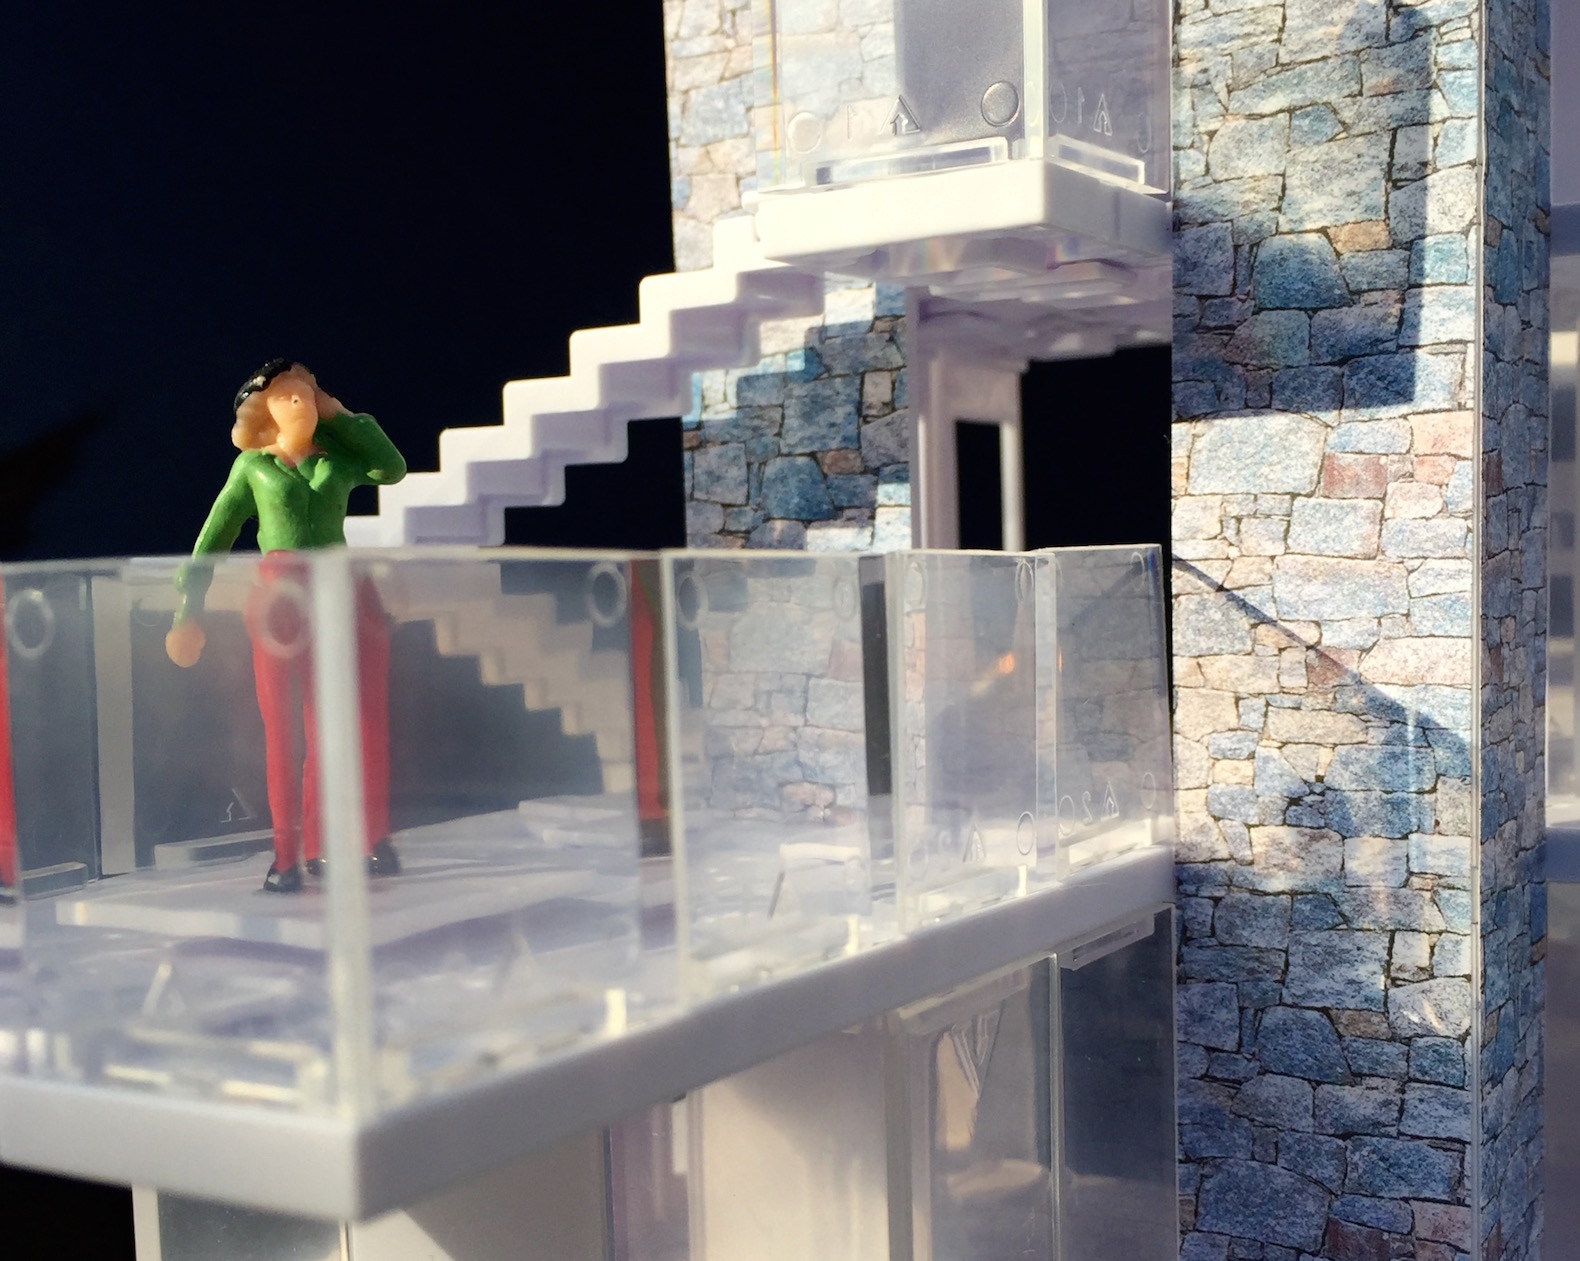 Arckit's architectural building blocks make LEGOs look like child's play